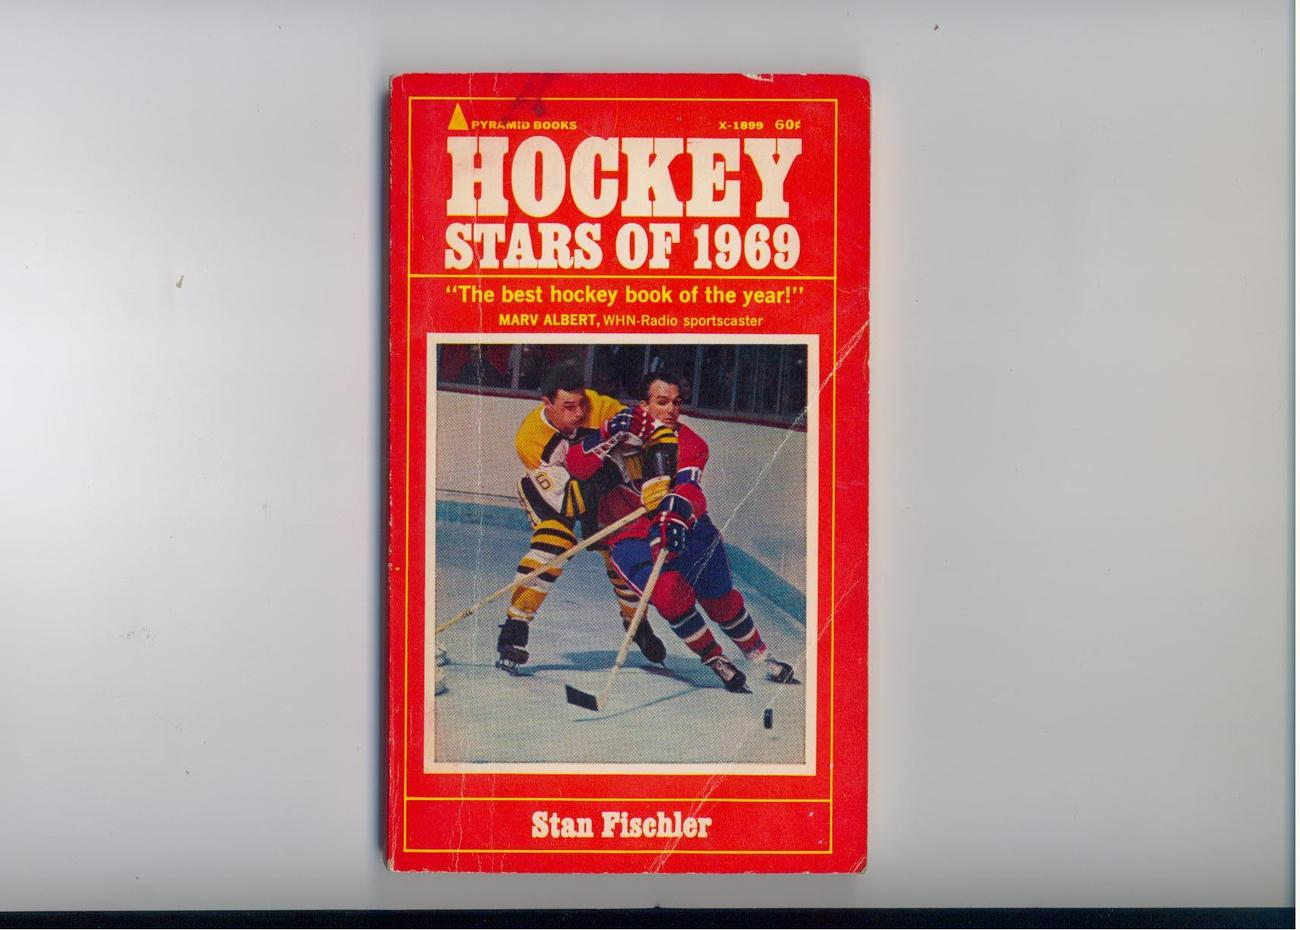 Fischler - HOCKEY STARS OF 1969 - original  paperback